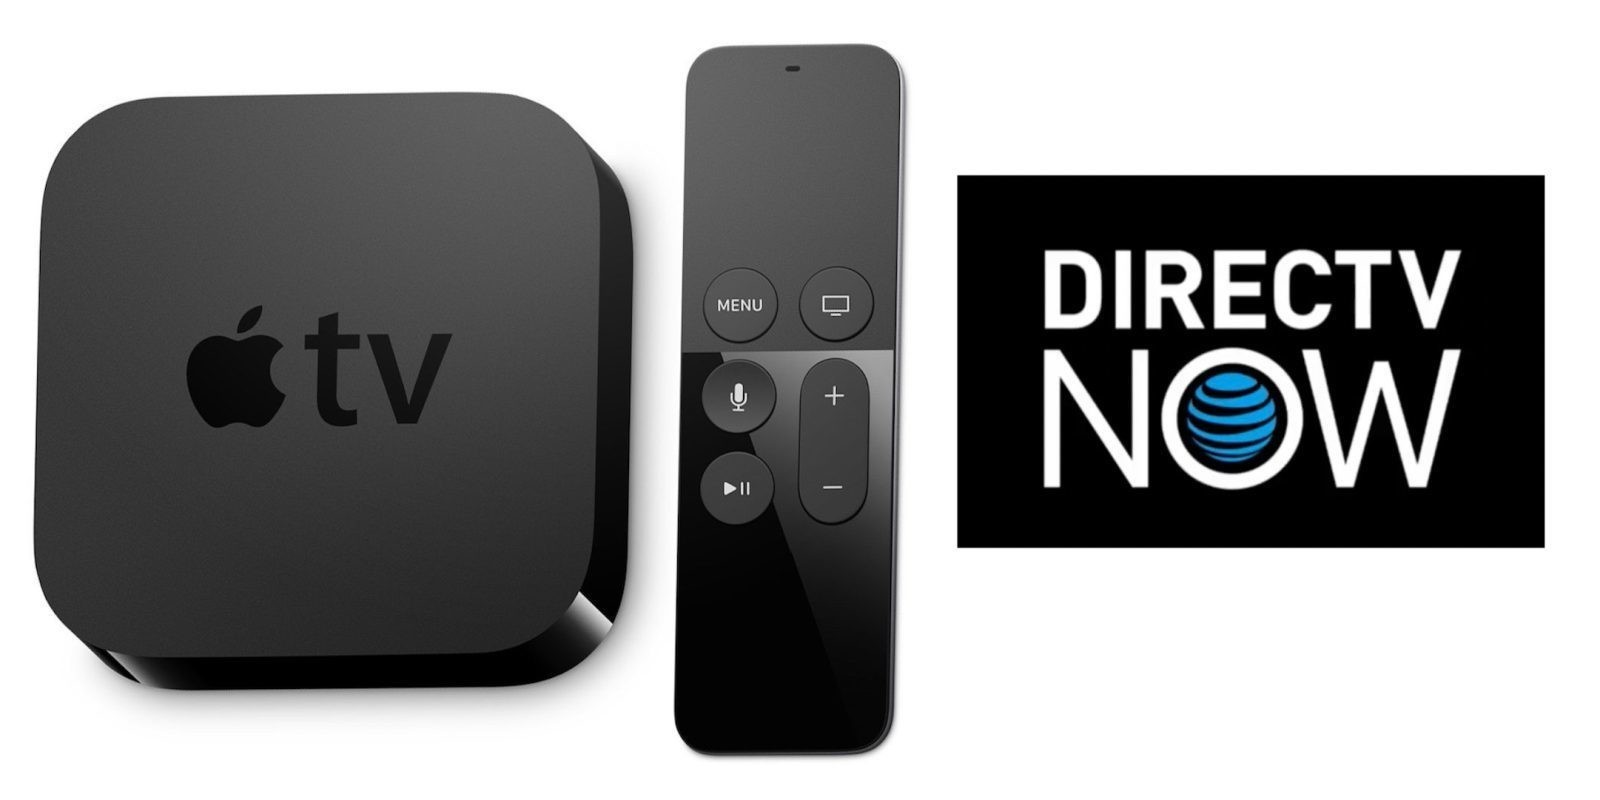 AT&T's DirecTV Now streaming TV service officially unveiled: launching November 30 from $35/month